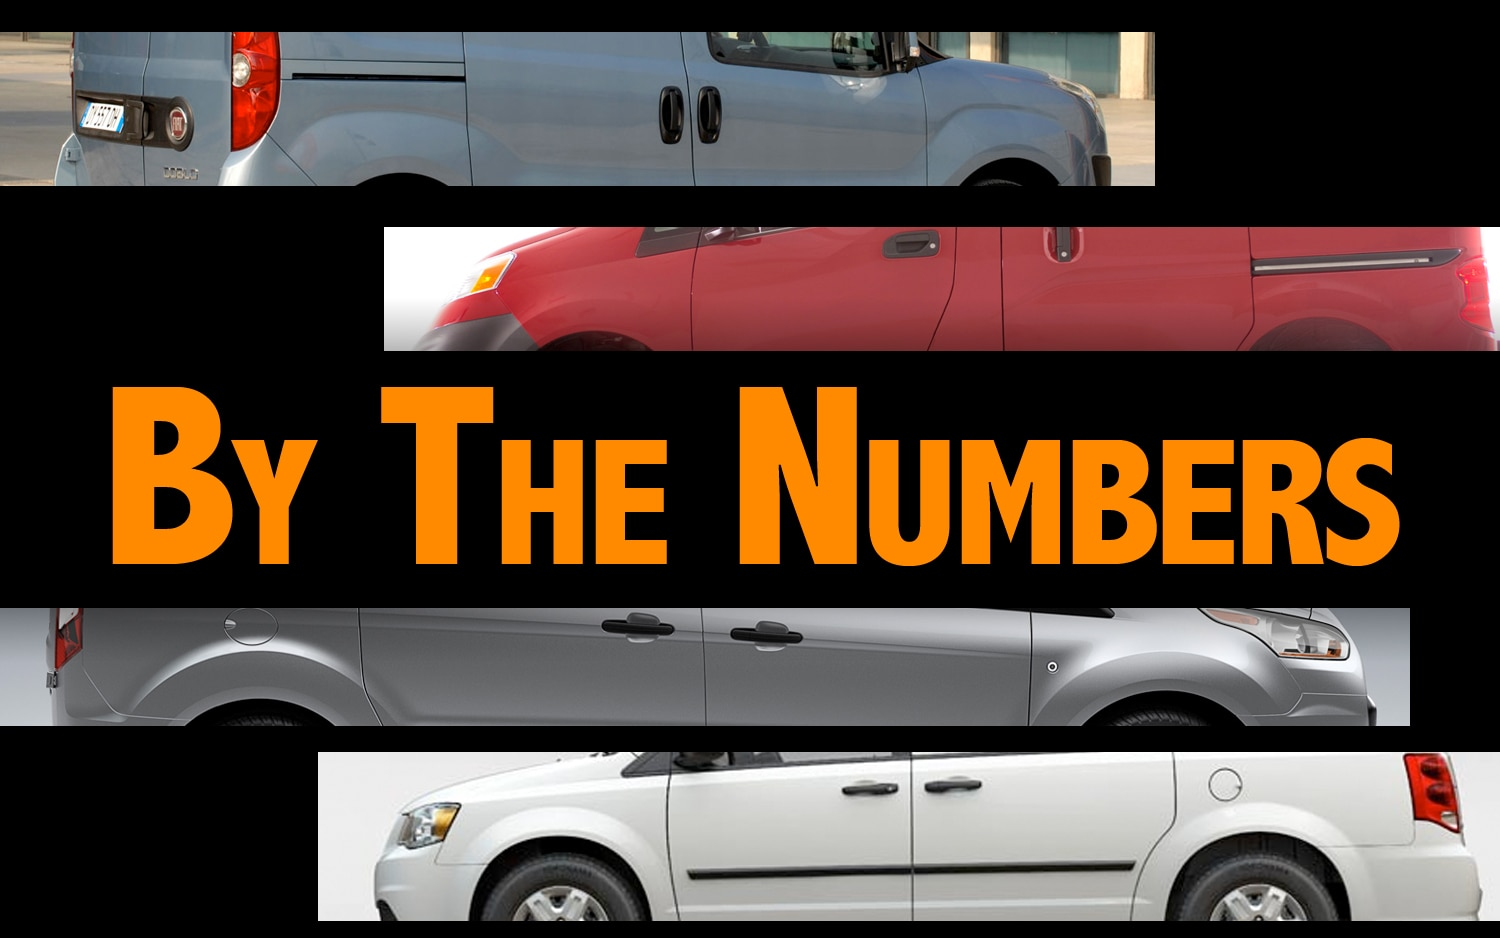 By The Numbers: Ford Transit Connect, Ram C/V, Nissan NV200, Fiat Doblo